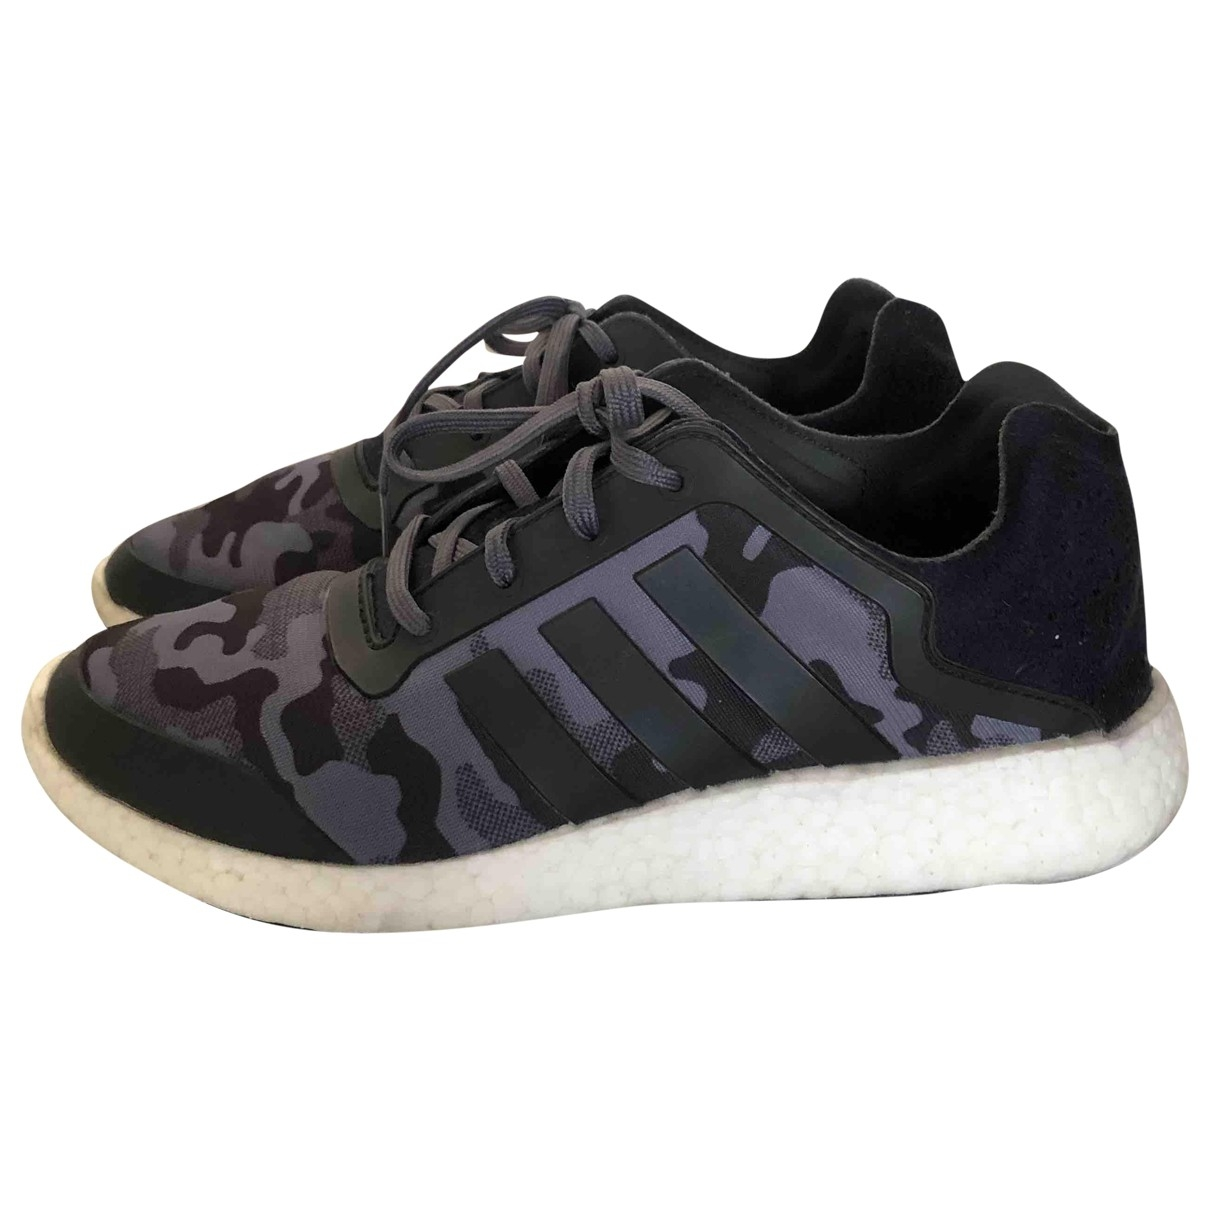 Adidas Ultraboost Grey Leather Trainers for Women 39 EU